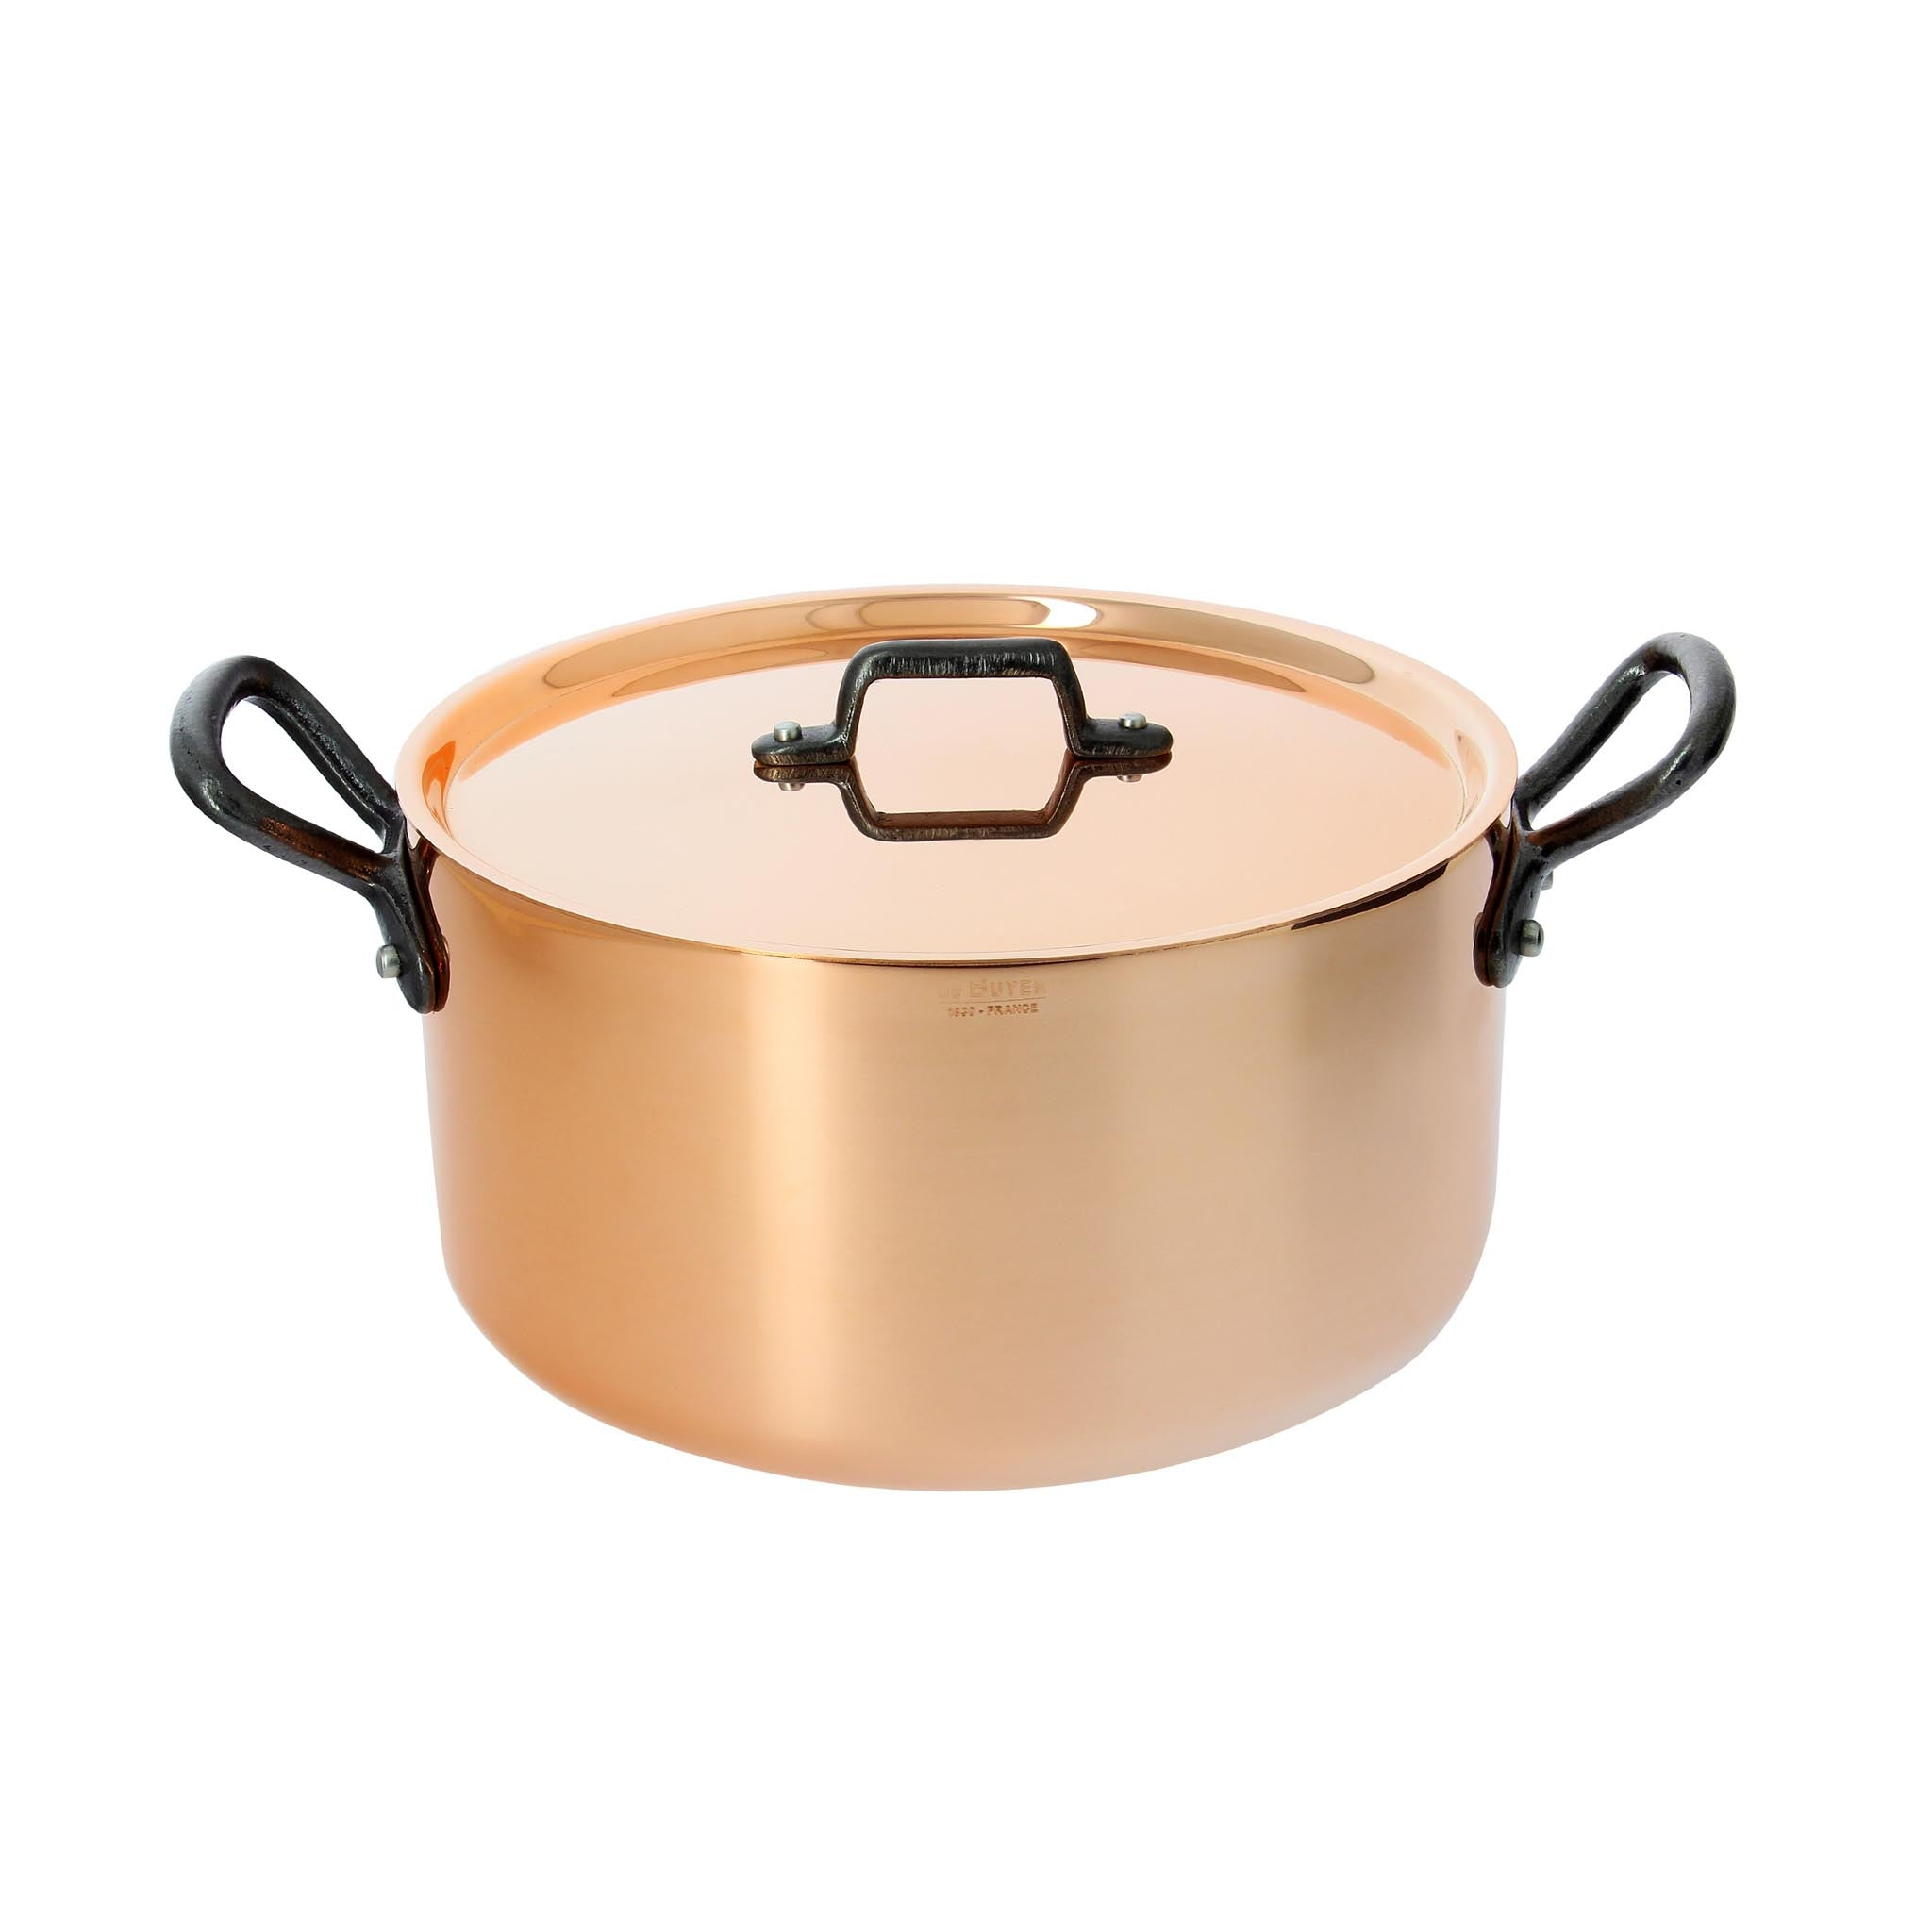 De Buyer Prima Matera Induction Copper Casserole Pan